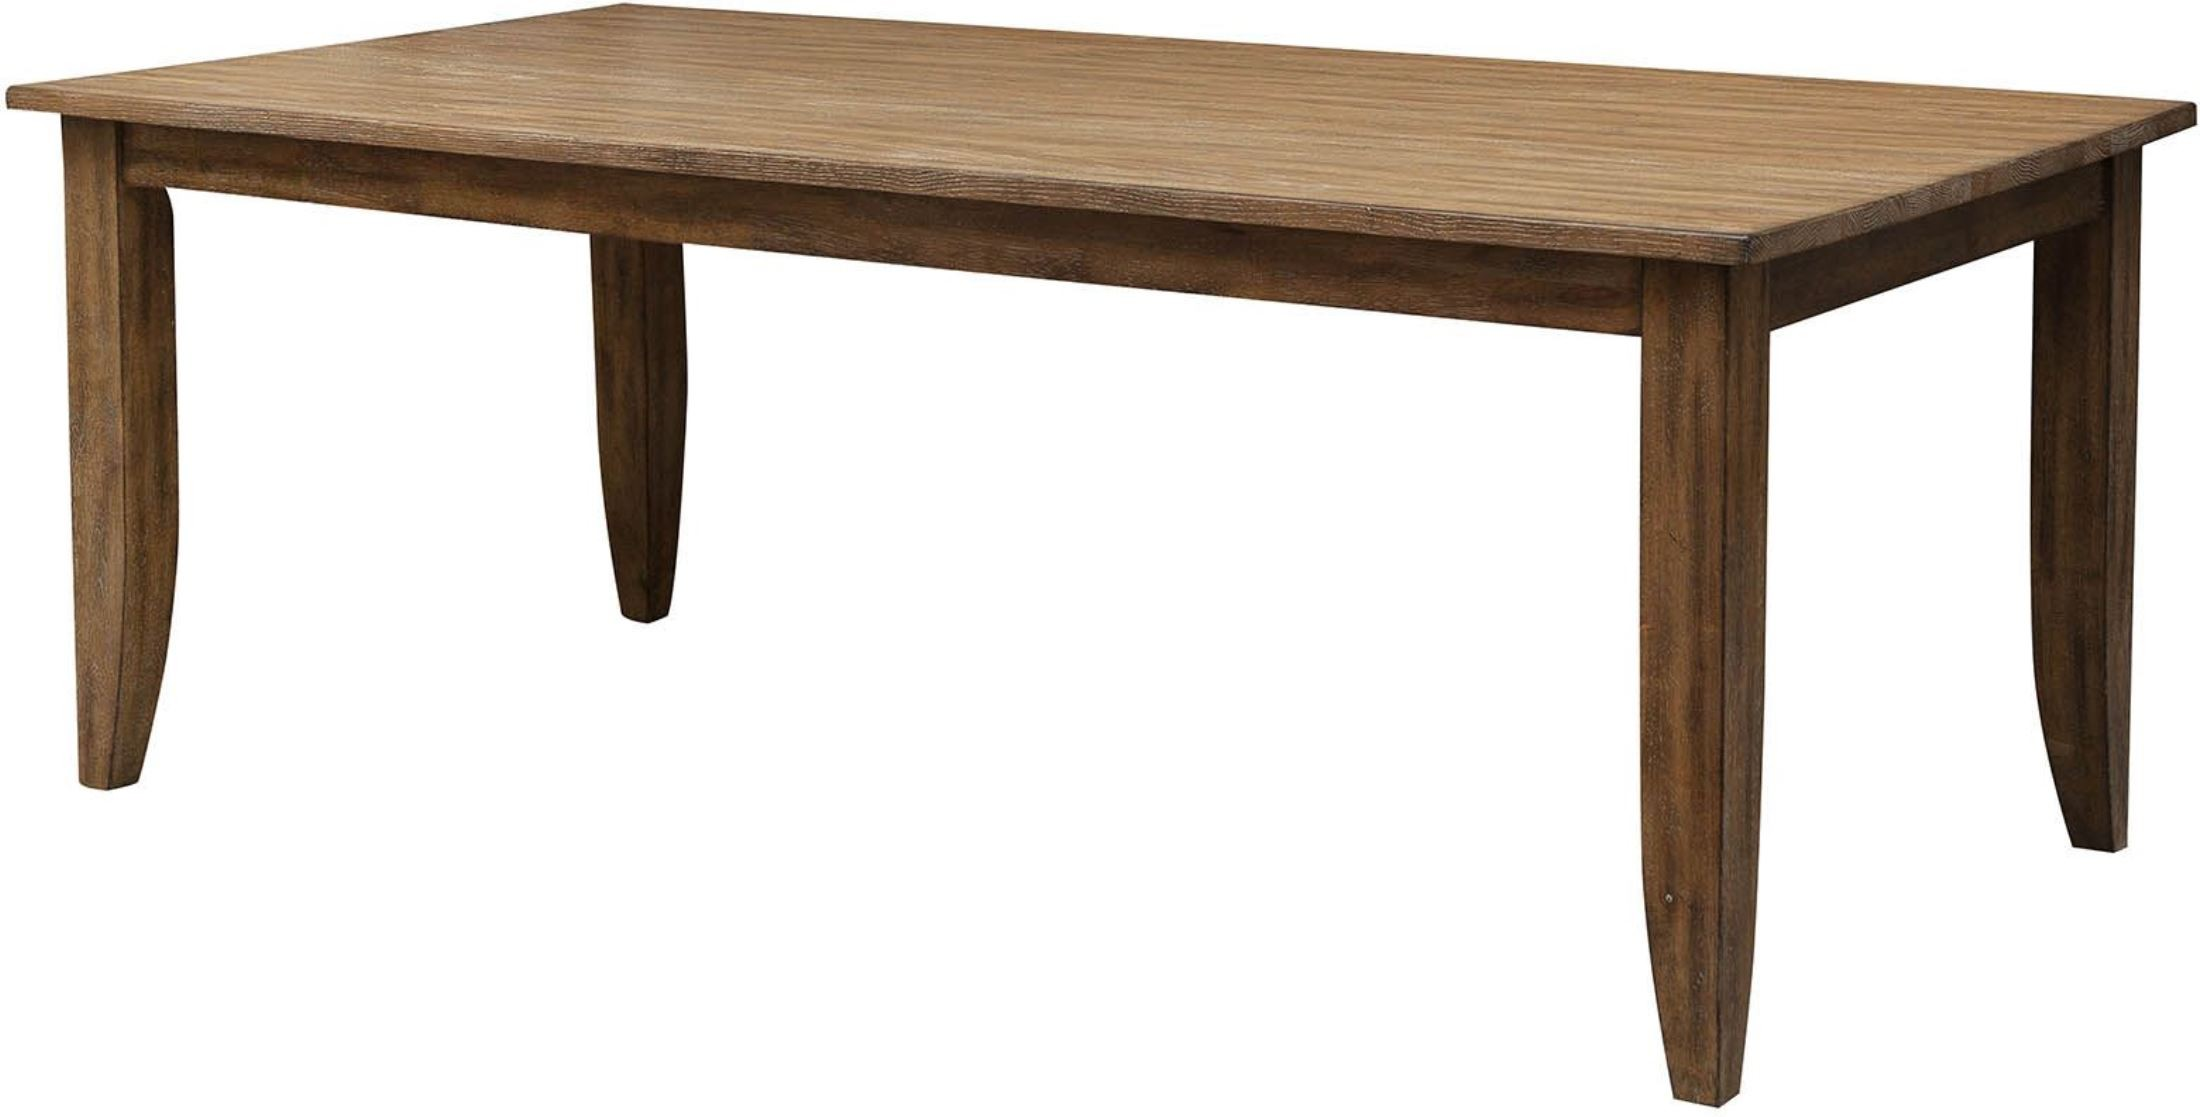 The Nook Oak 60quot Rectangular Dining Table from Kincaid  : 663 760silo from colemanfurniture.com size 2200 x 1117 jpeg 174kB